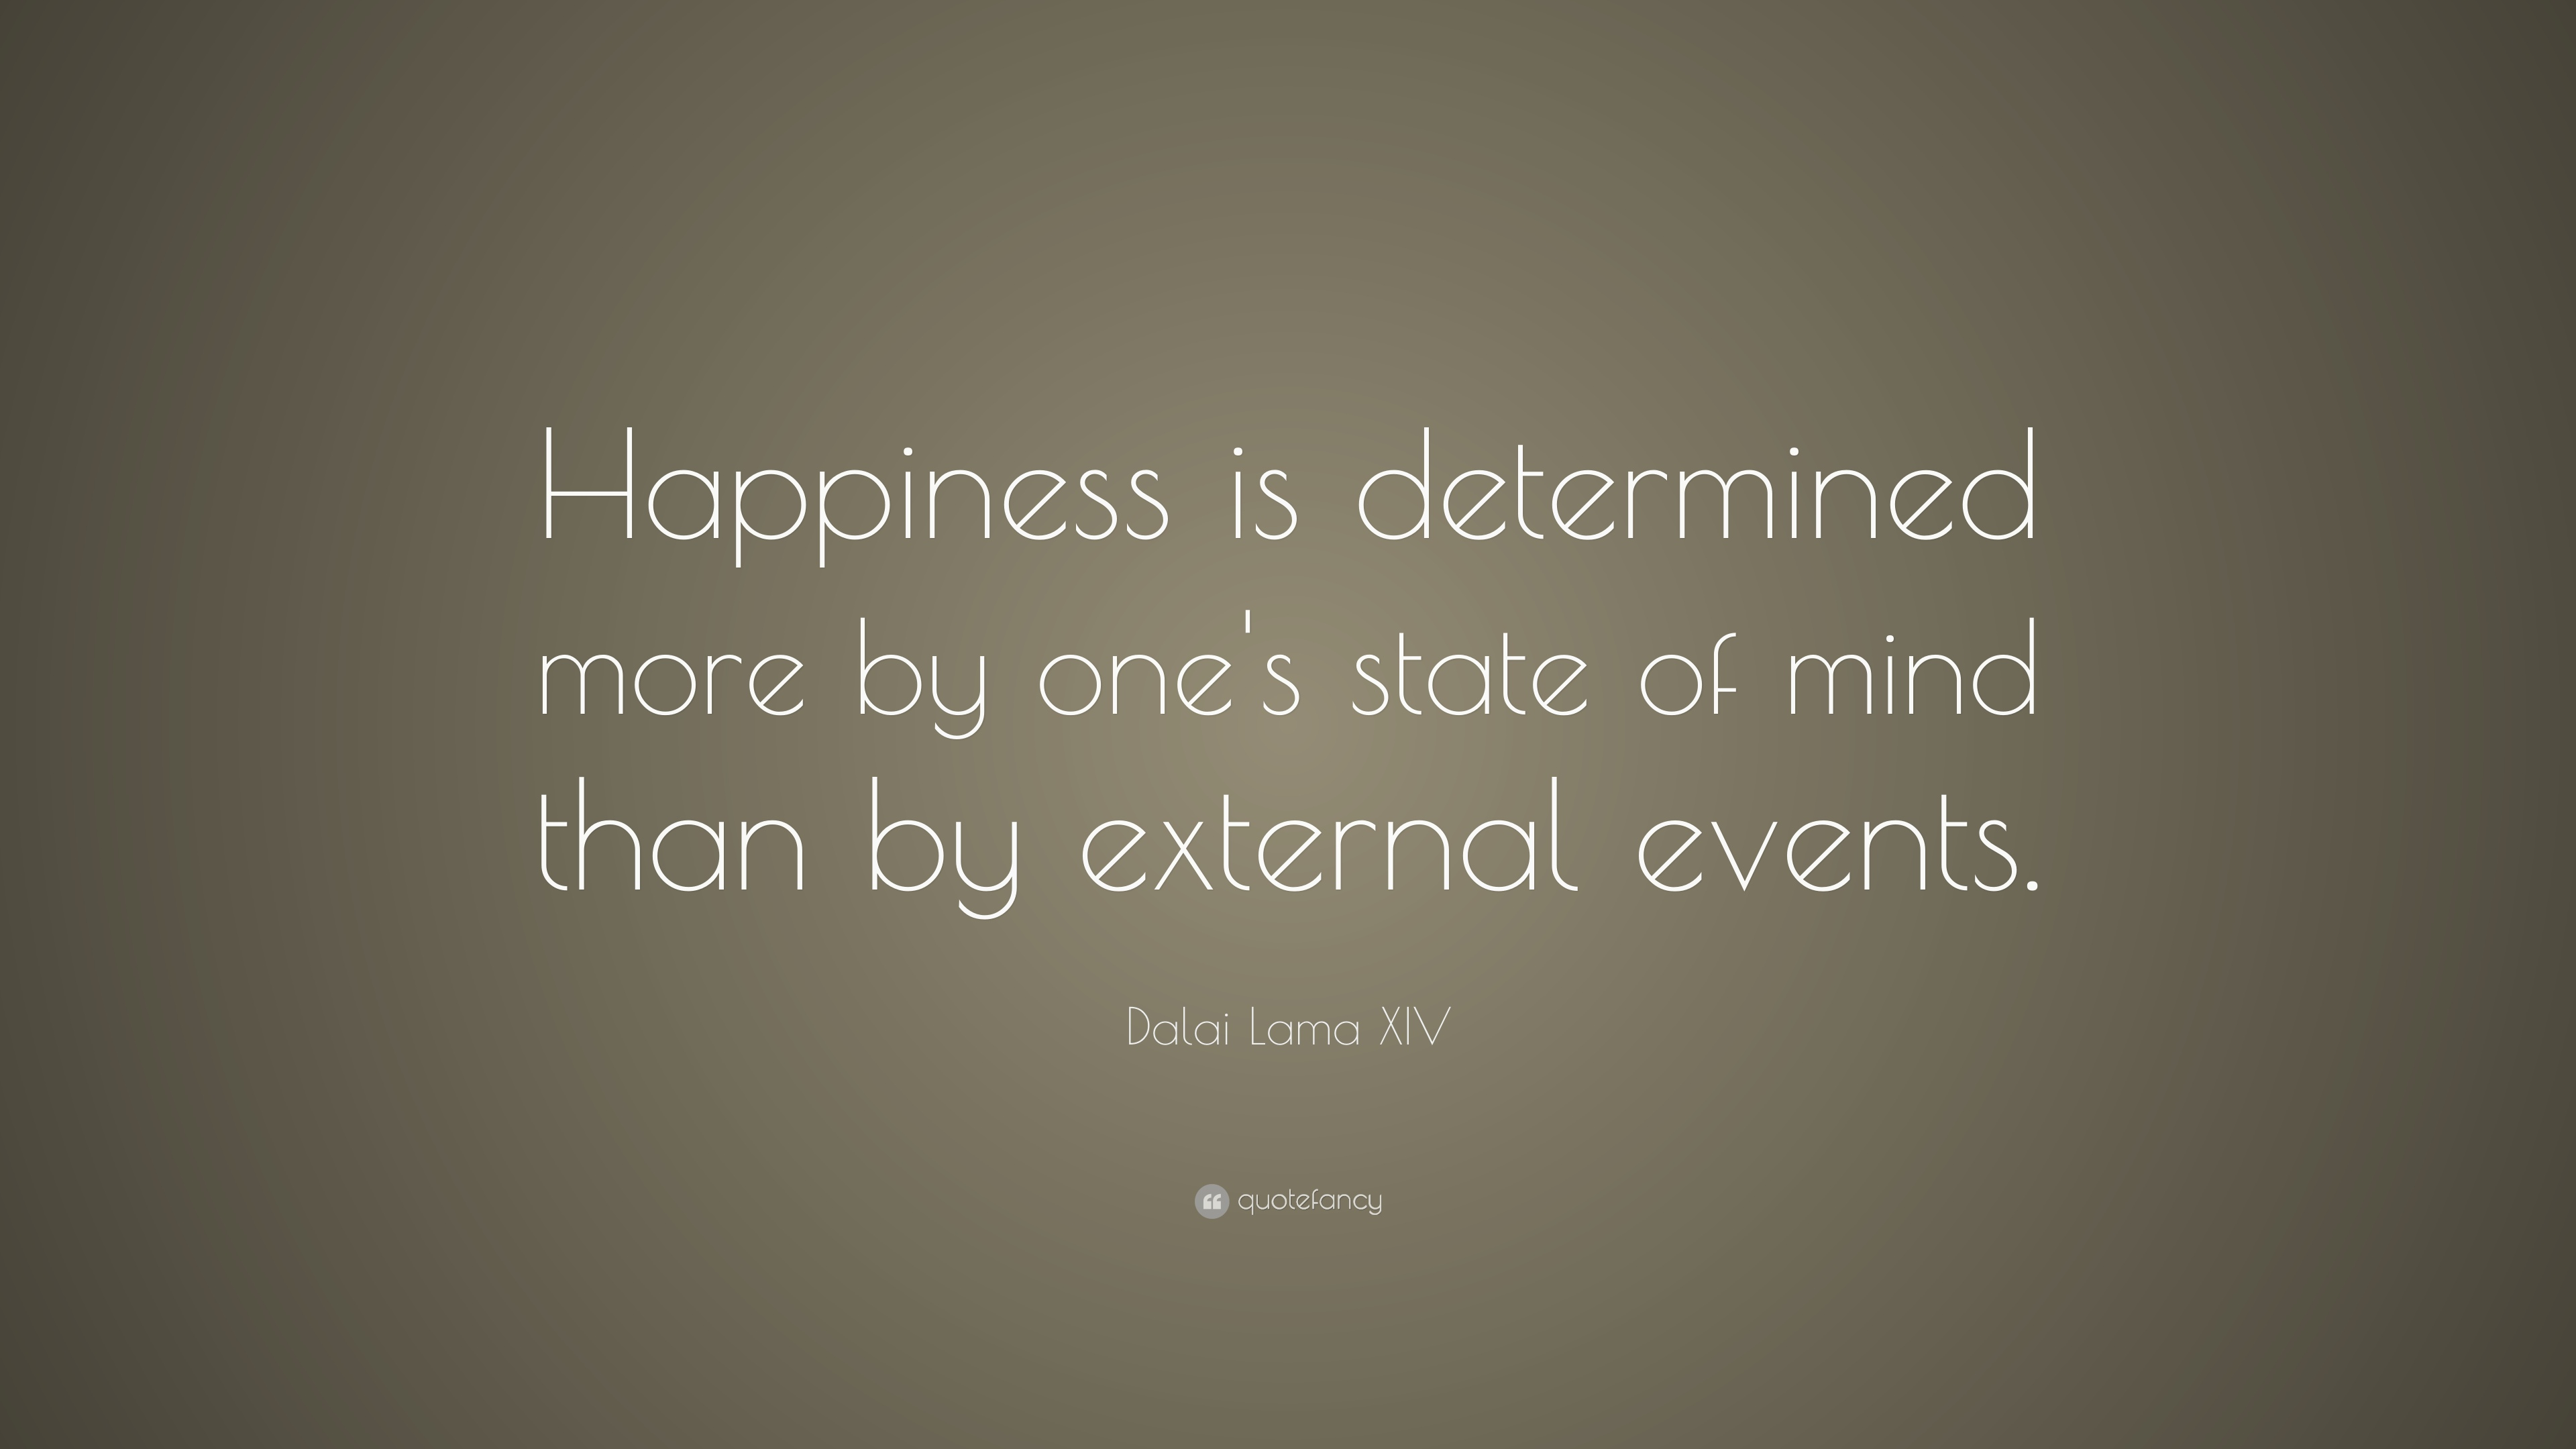 Dalai Lama Quotes Wallpapers Dalai Lama Xiv Quote Happiness Is Determined More By One